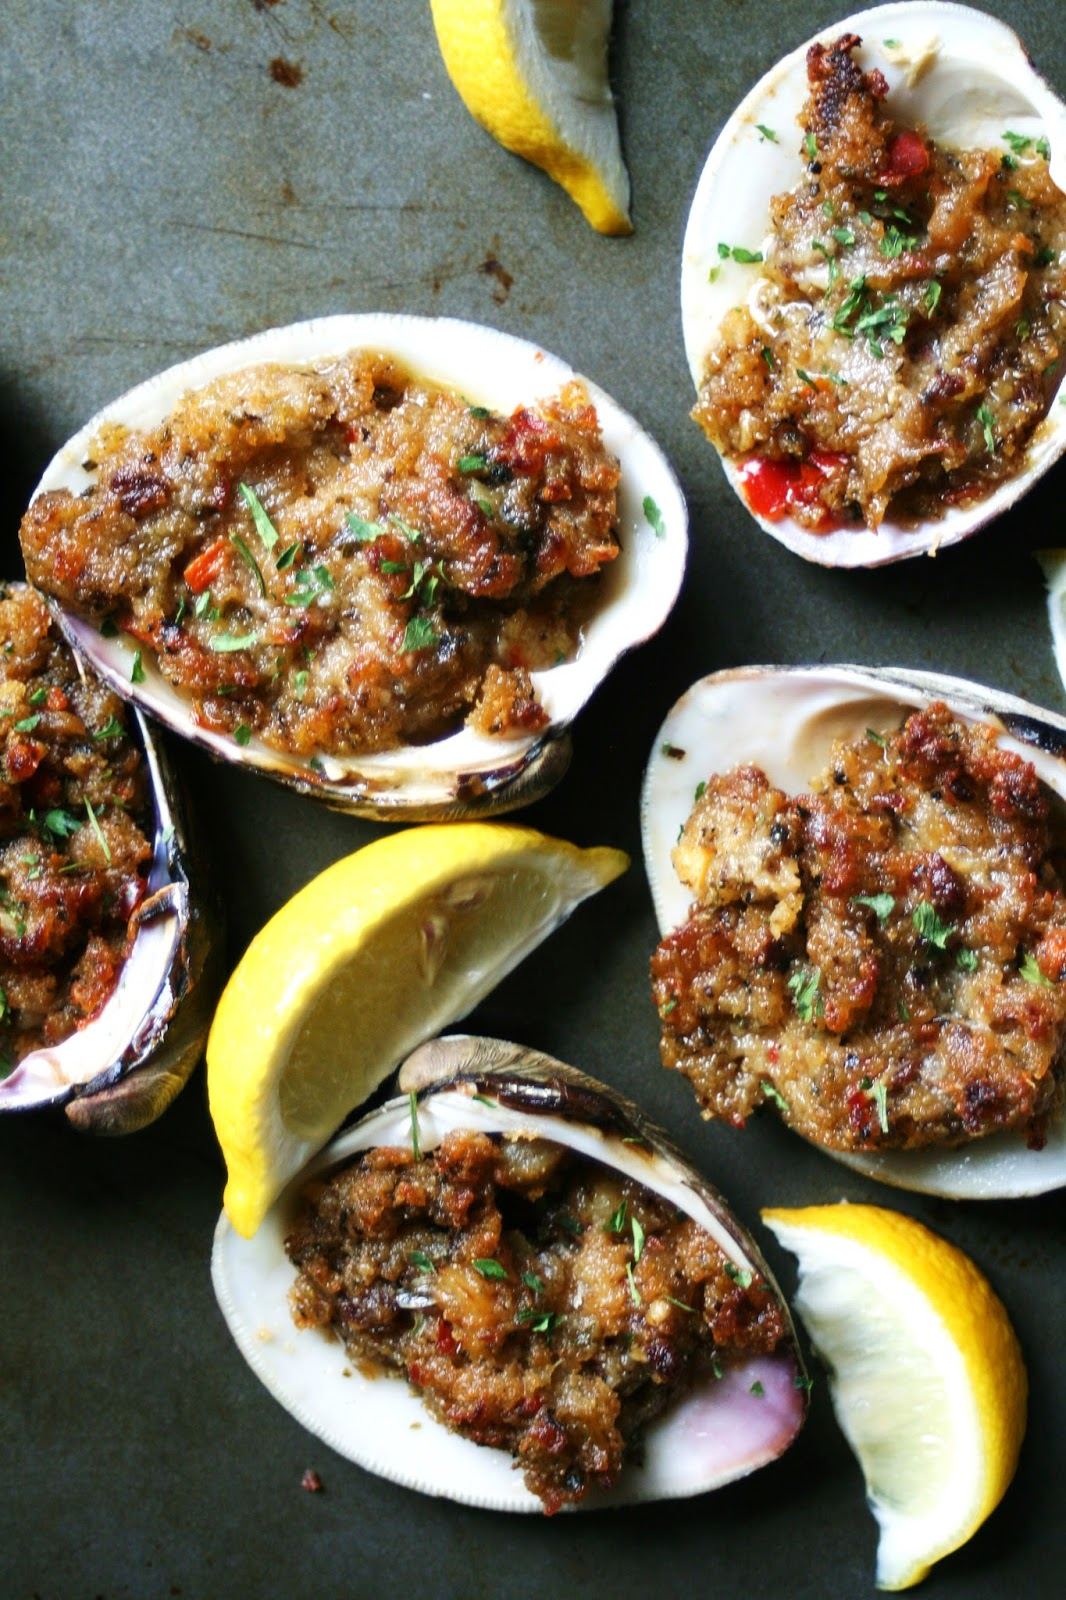 Chrozio Stuffed Baked Quahog Clams